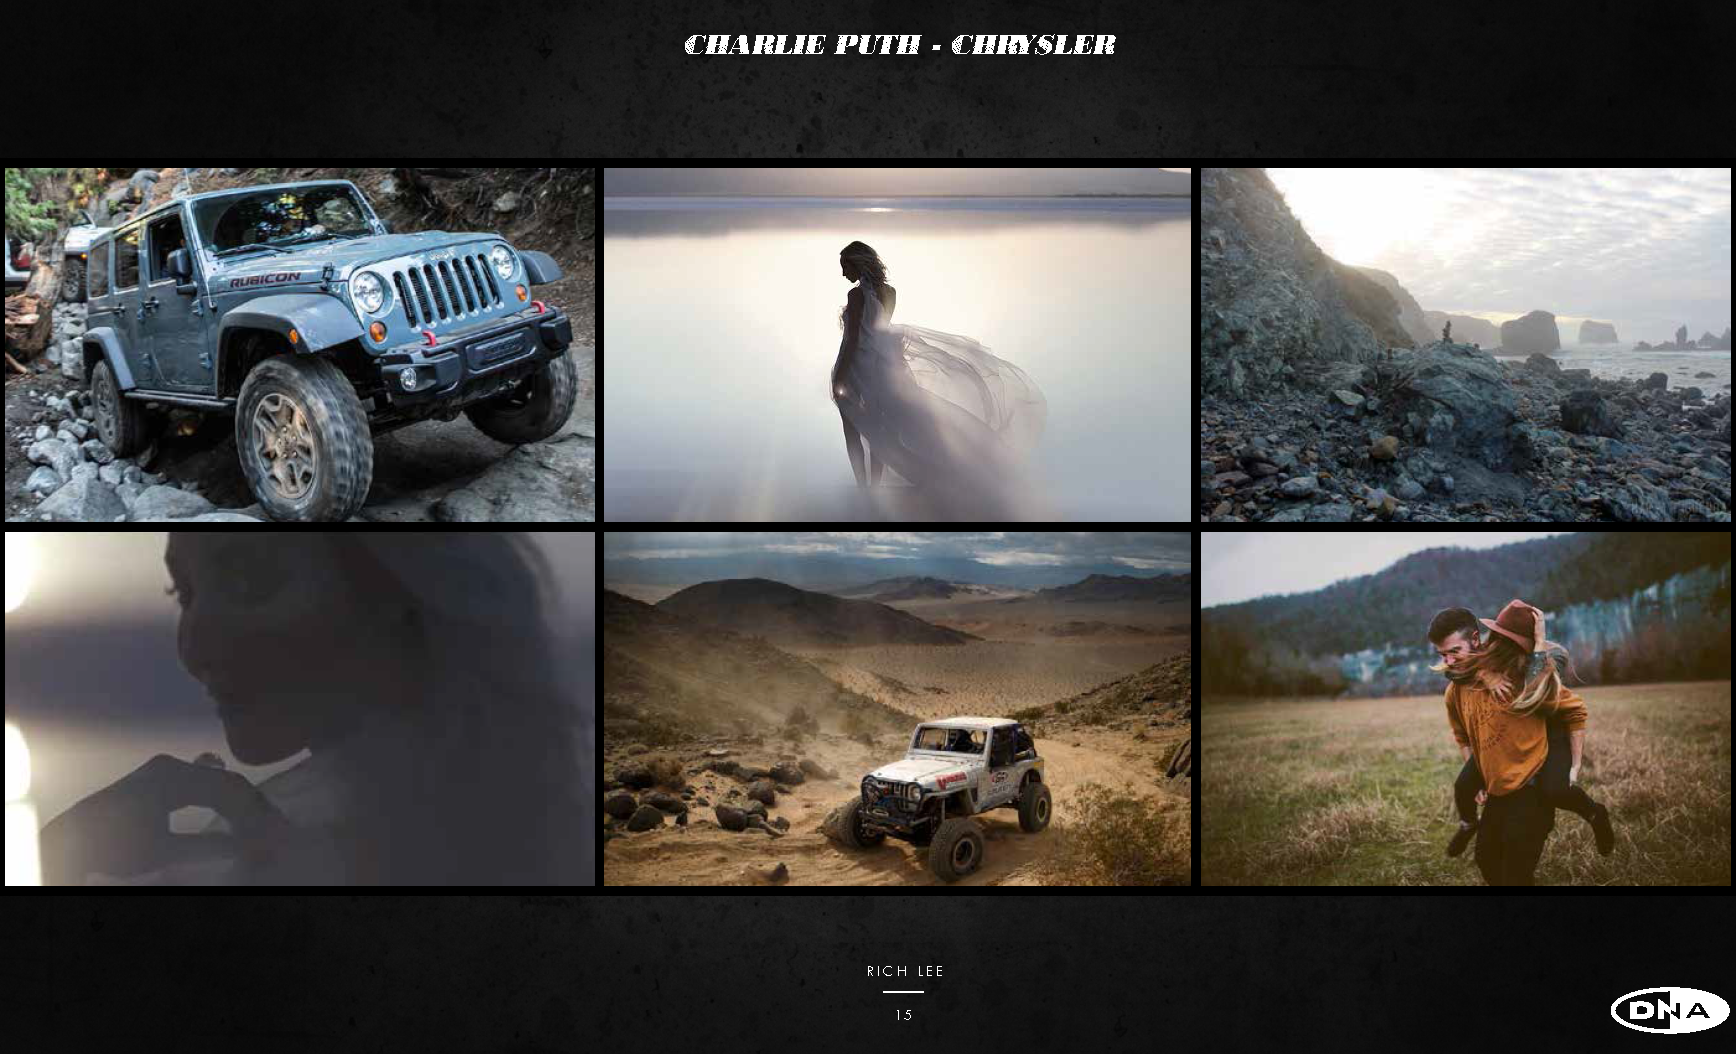 CP_Chrysler_101215_1_Page_15.png